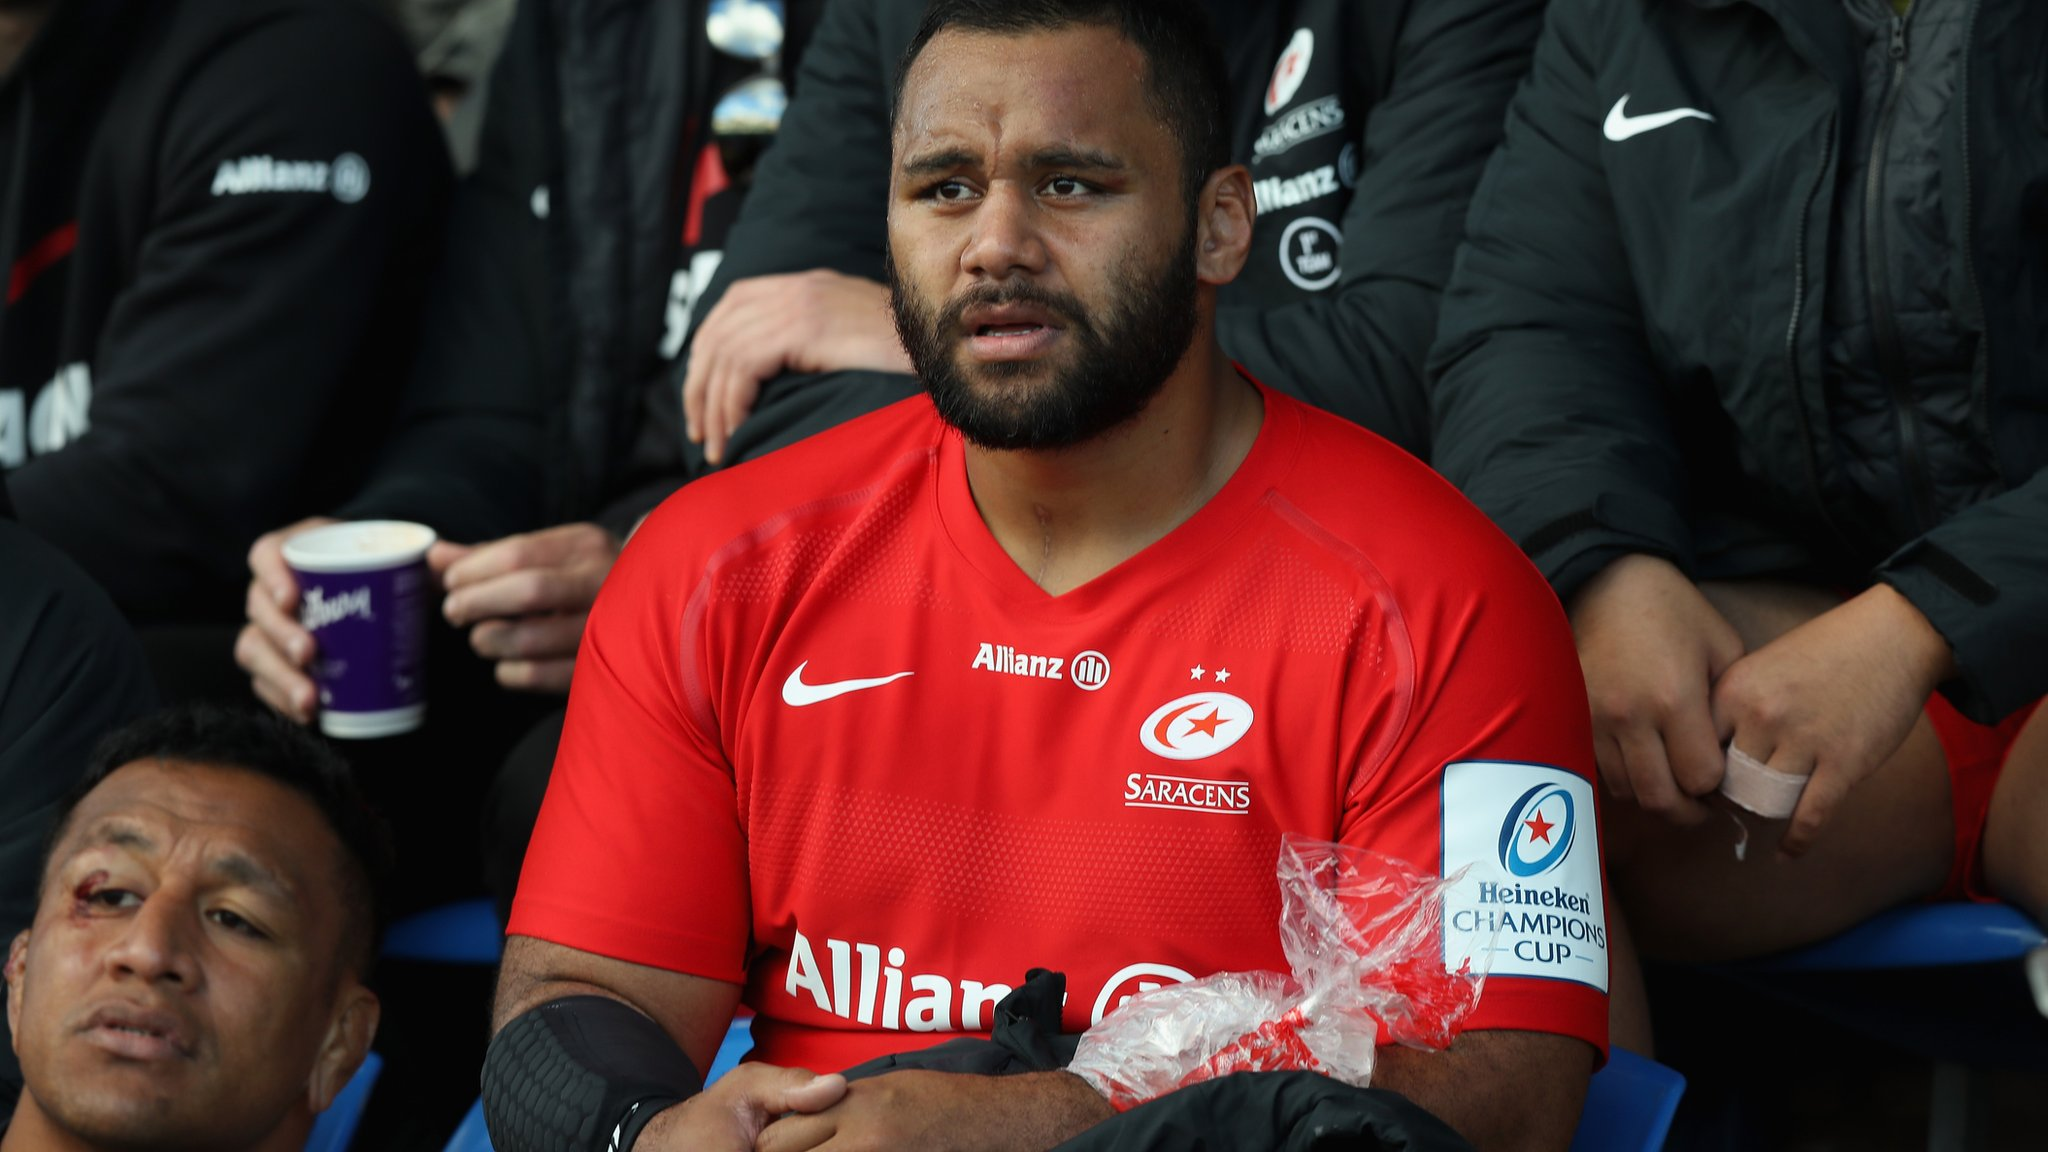 Vunipola to miss autumn internationals with broken arm